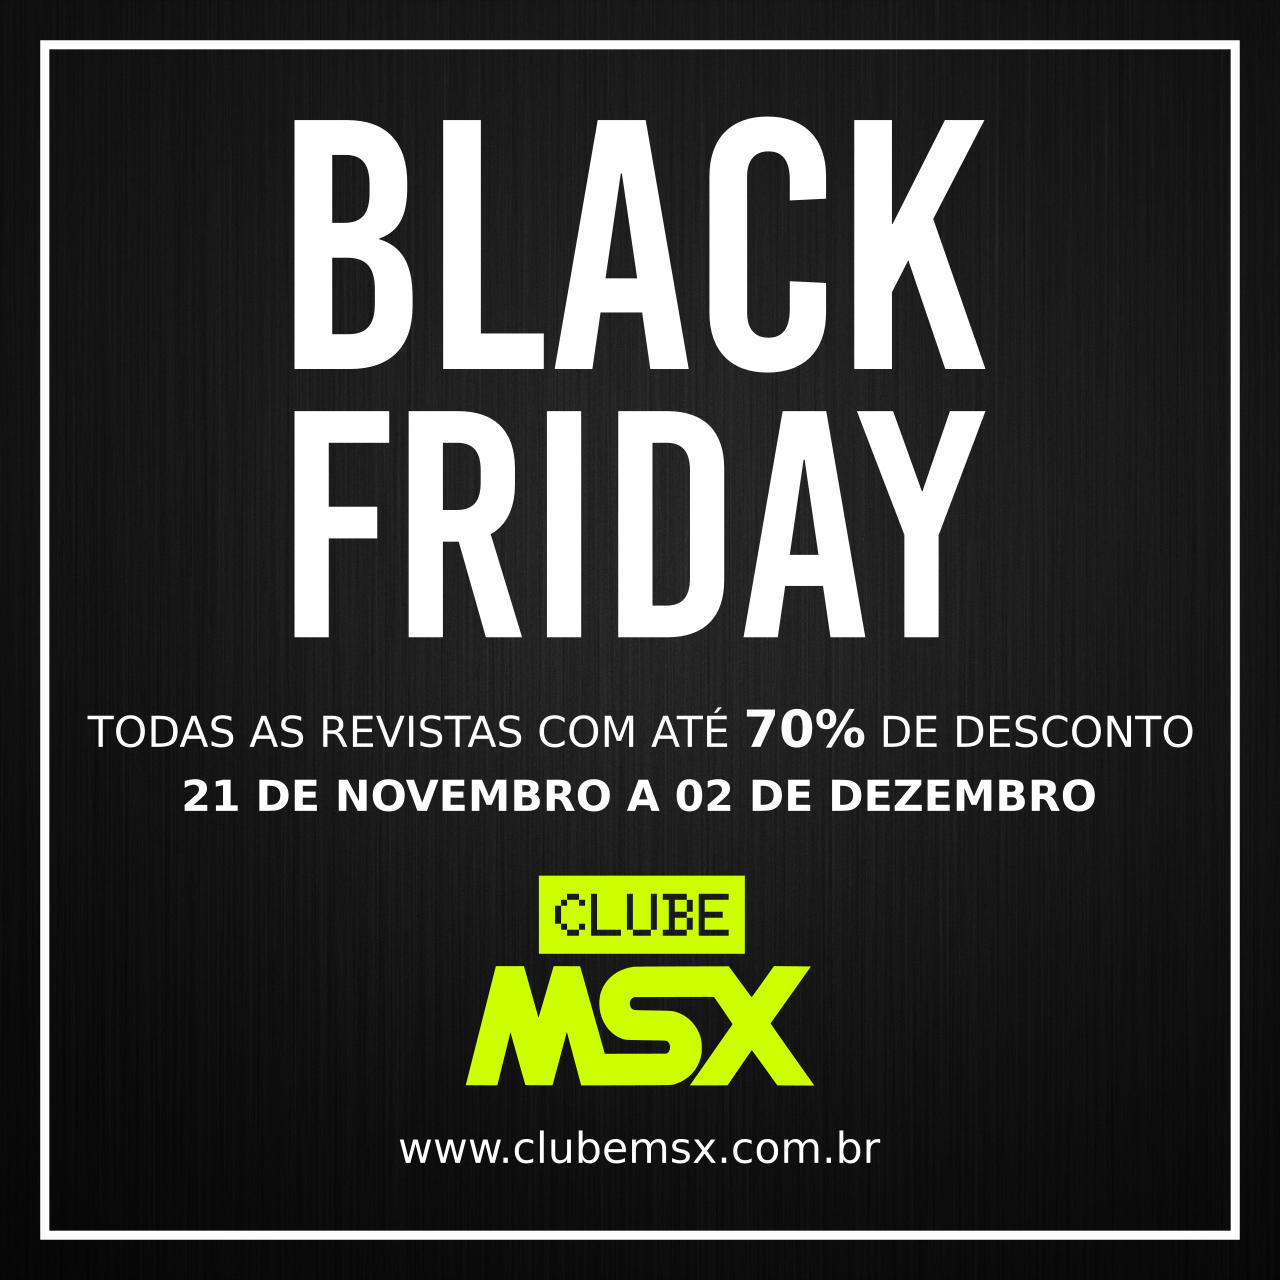 Black Friday Clube MSX 2019 | REVISTA CLUBE MSX